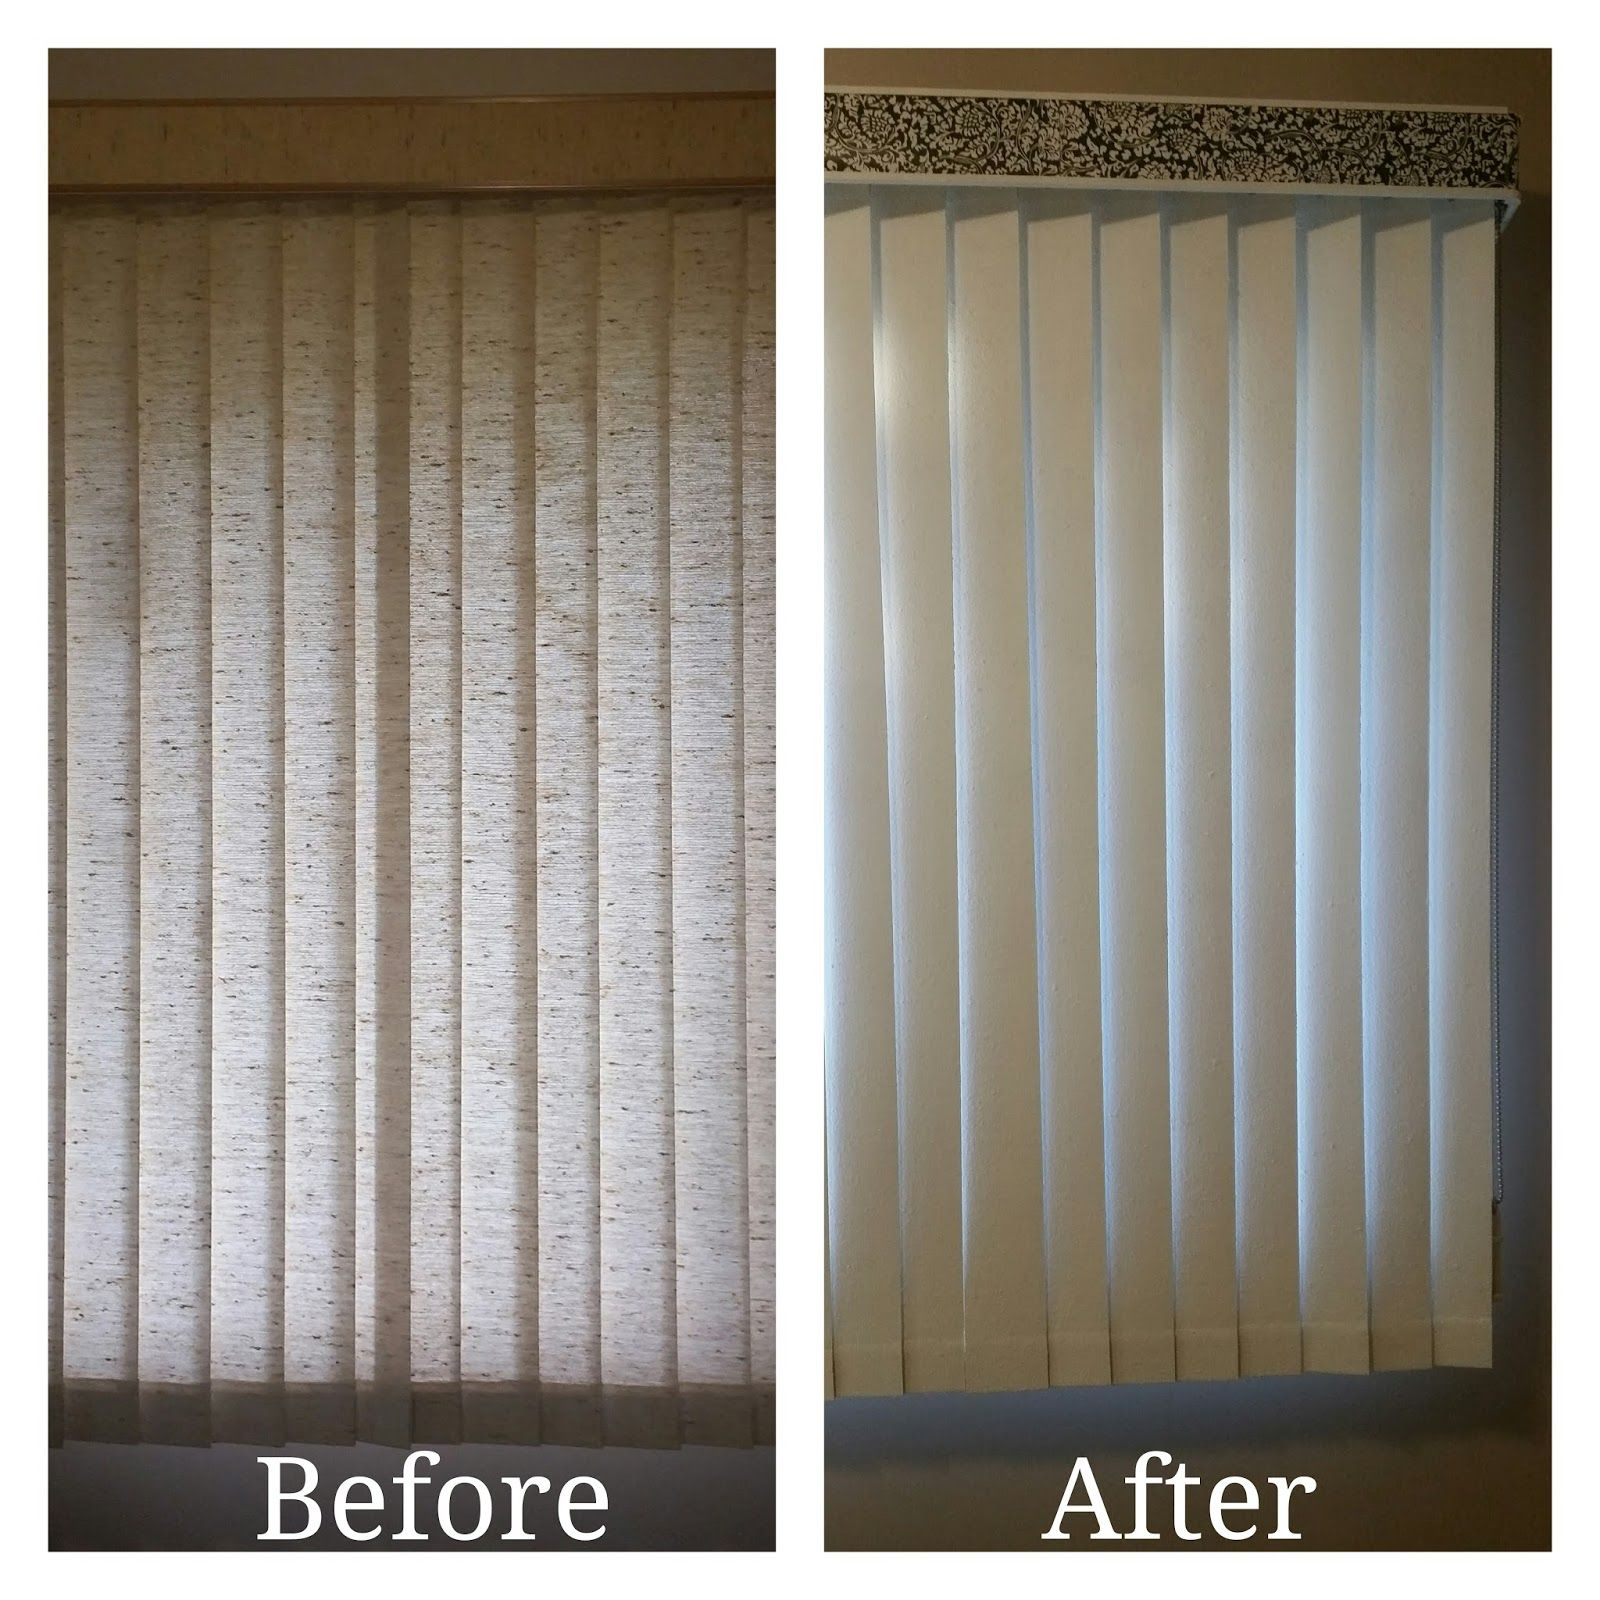 DIY How To Paint Fabric Vertical Blinds